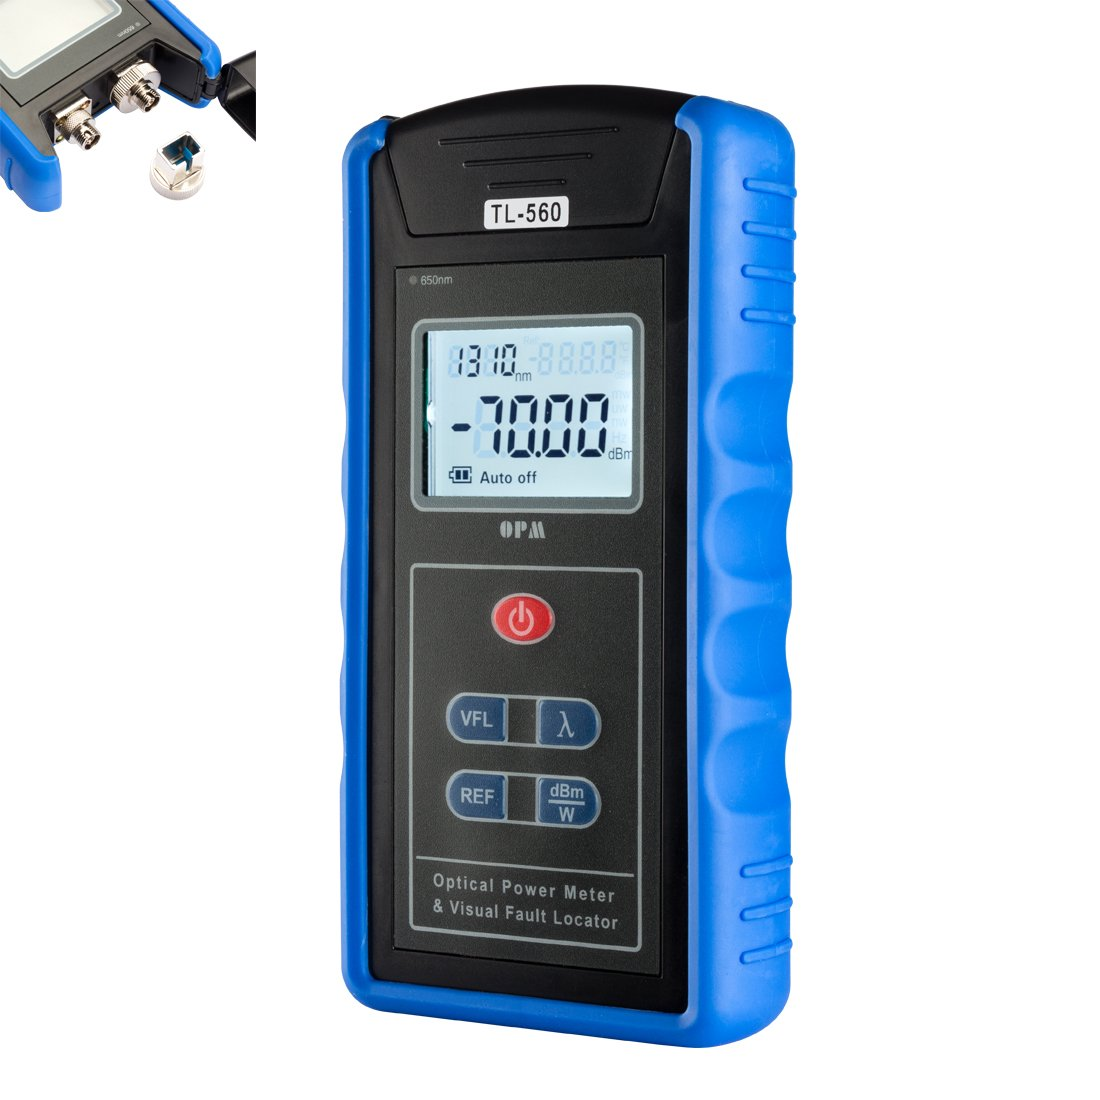 uxcell 5km -70 10 dBm Portable Optical Power Meter Visual Fault Locator SC/FC/ST Interfaces Fiber TL560 for CATV Test CCTV Test and Telecommunication